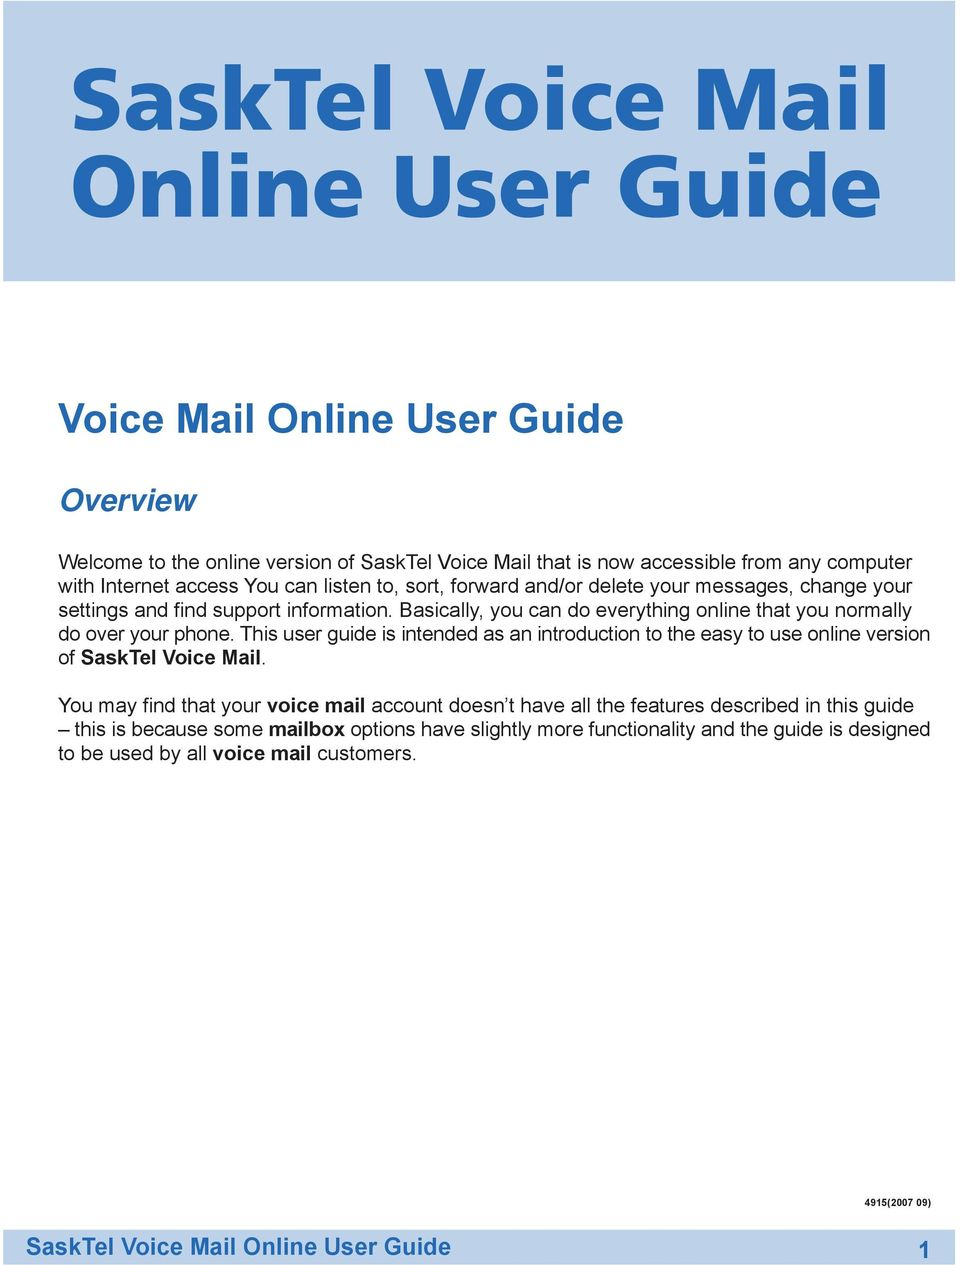 This user guide is intended as an introduction to the easy to use online version of SaskTel Voice Mail.